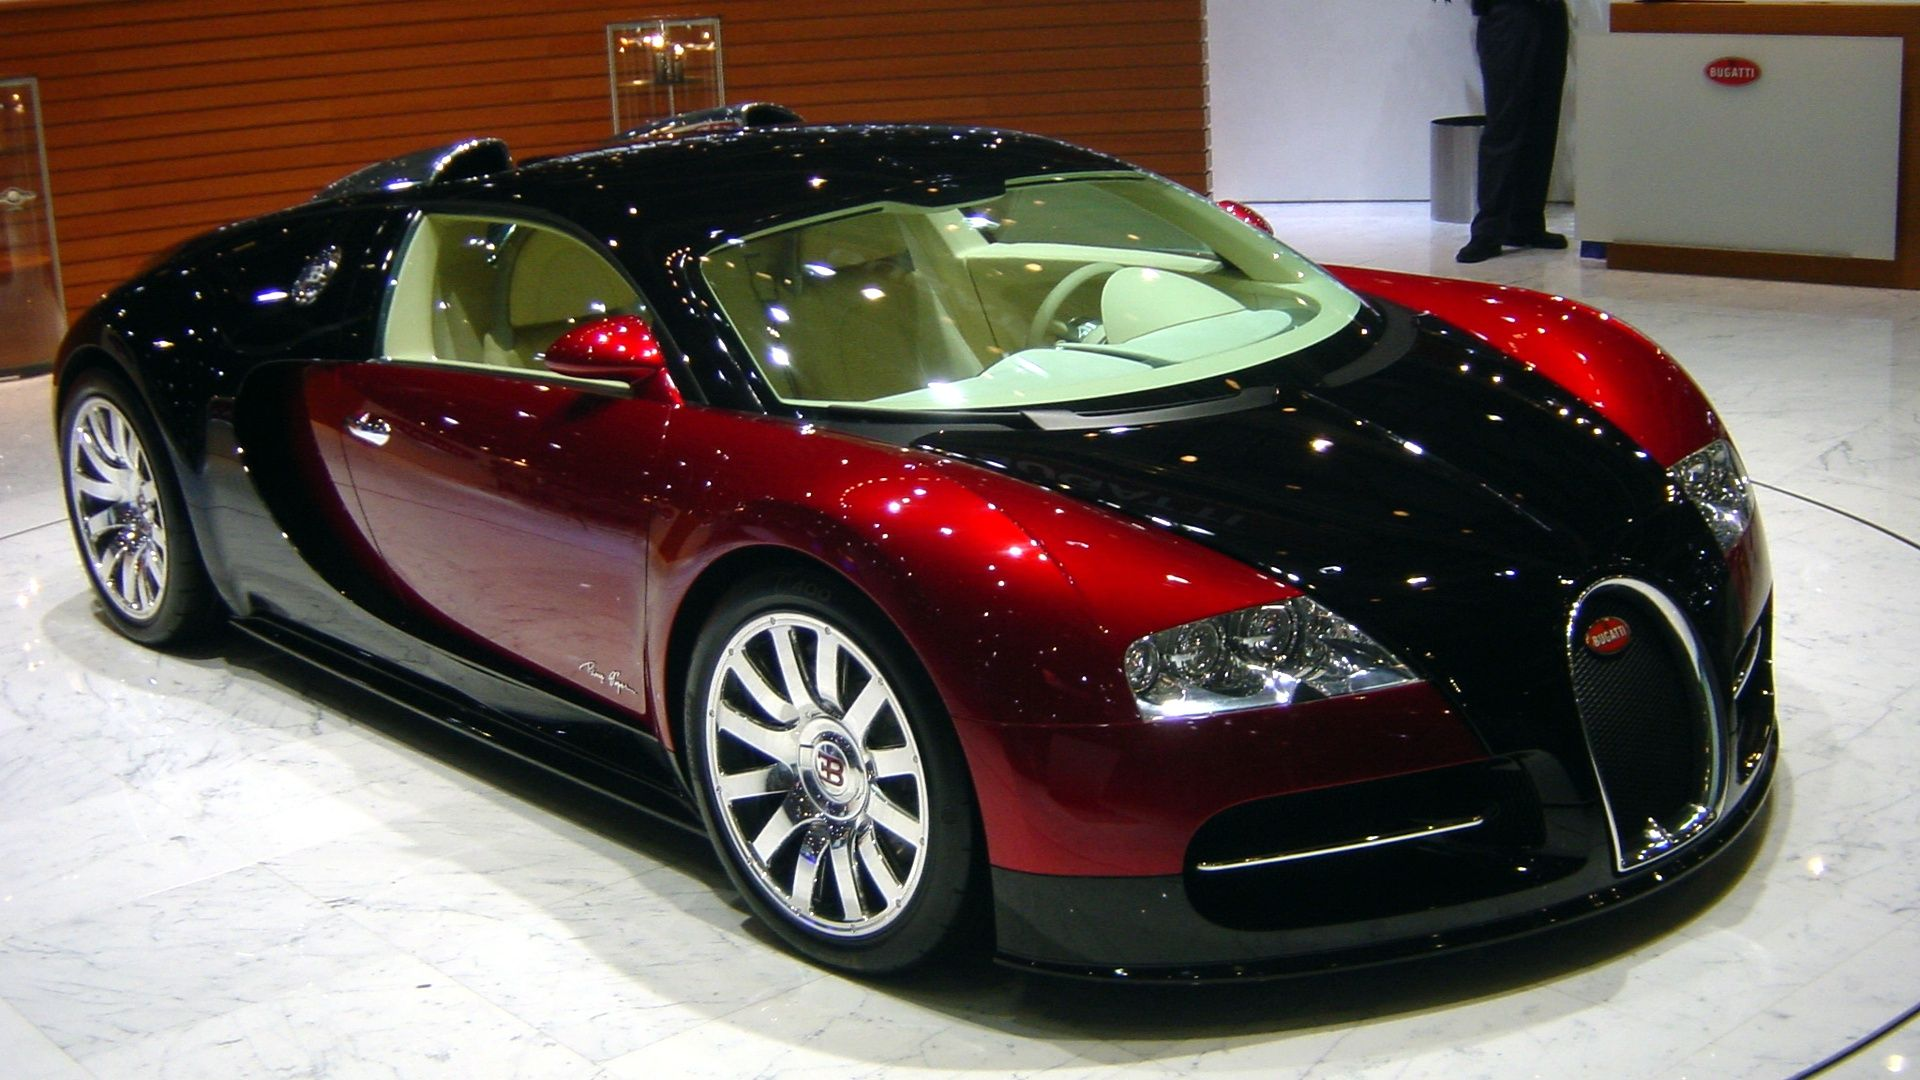 92a0513fac2f7f9e16e860da7f78dd9d Terrific New Bugatti Veyron Ss Price Cars Trend